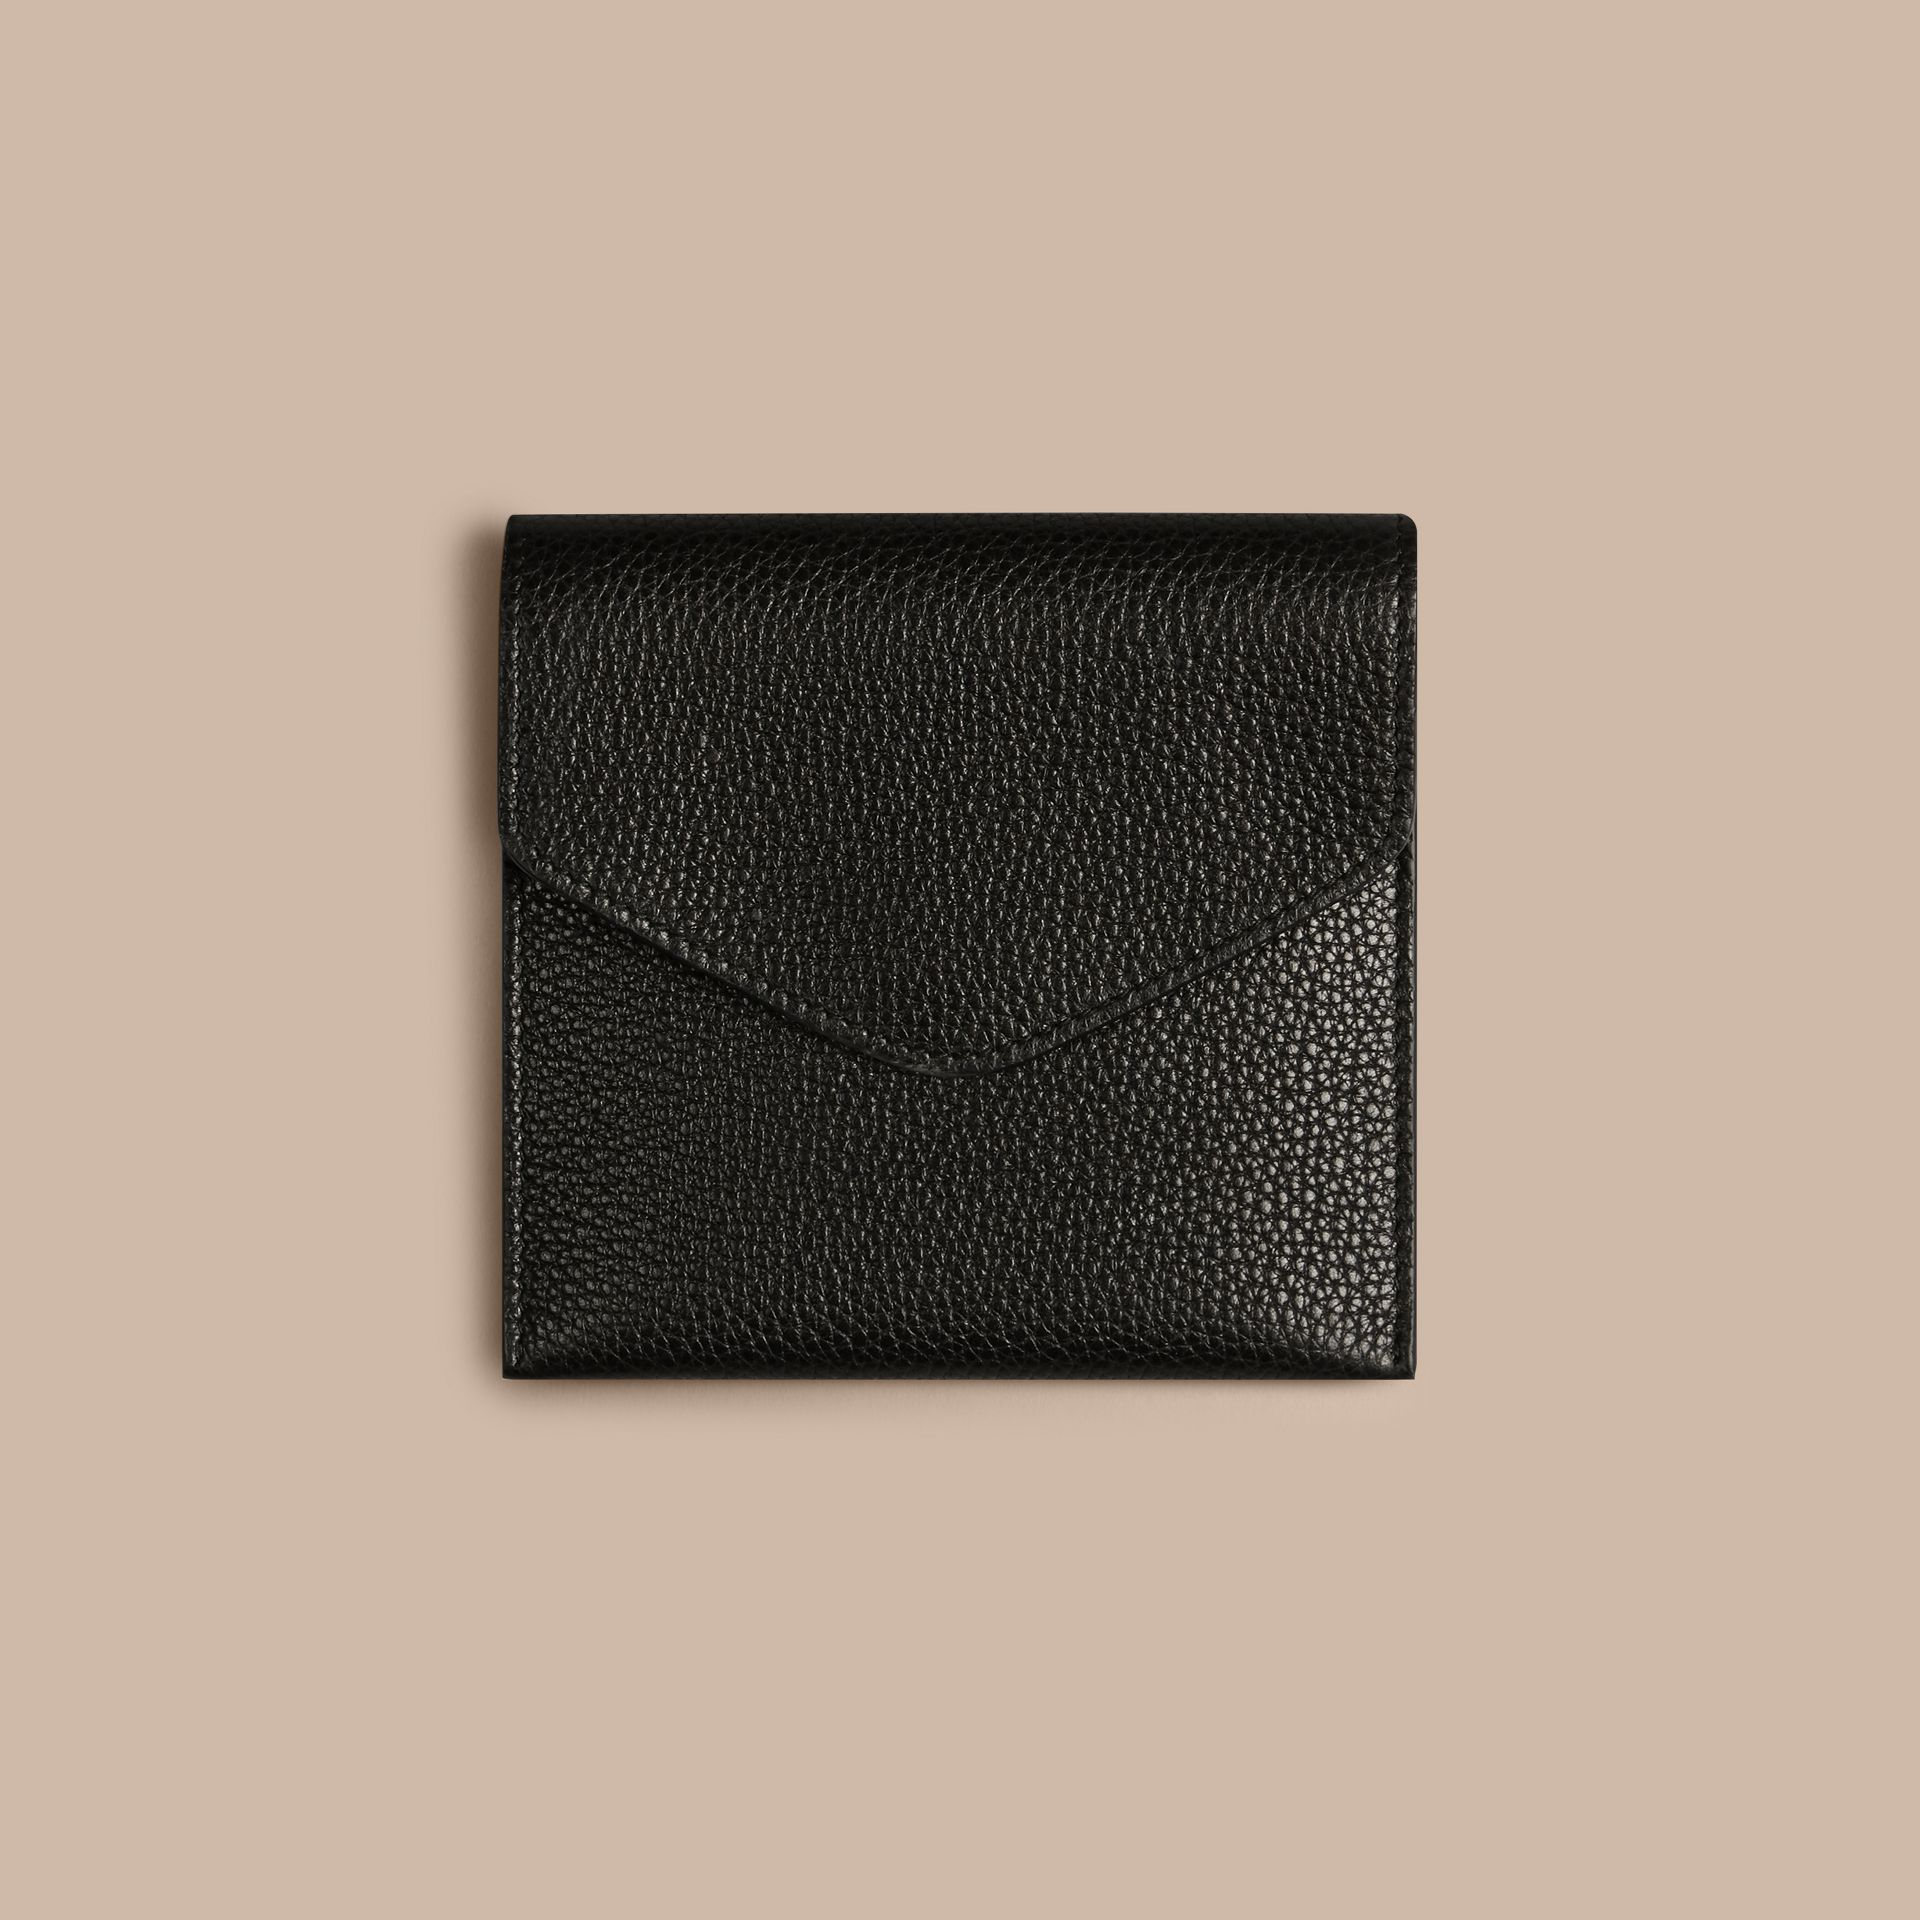 Grainy Leather Cufflink Case in Black - Men | Burberry - gallery image 2